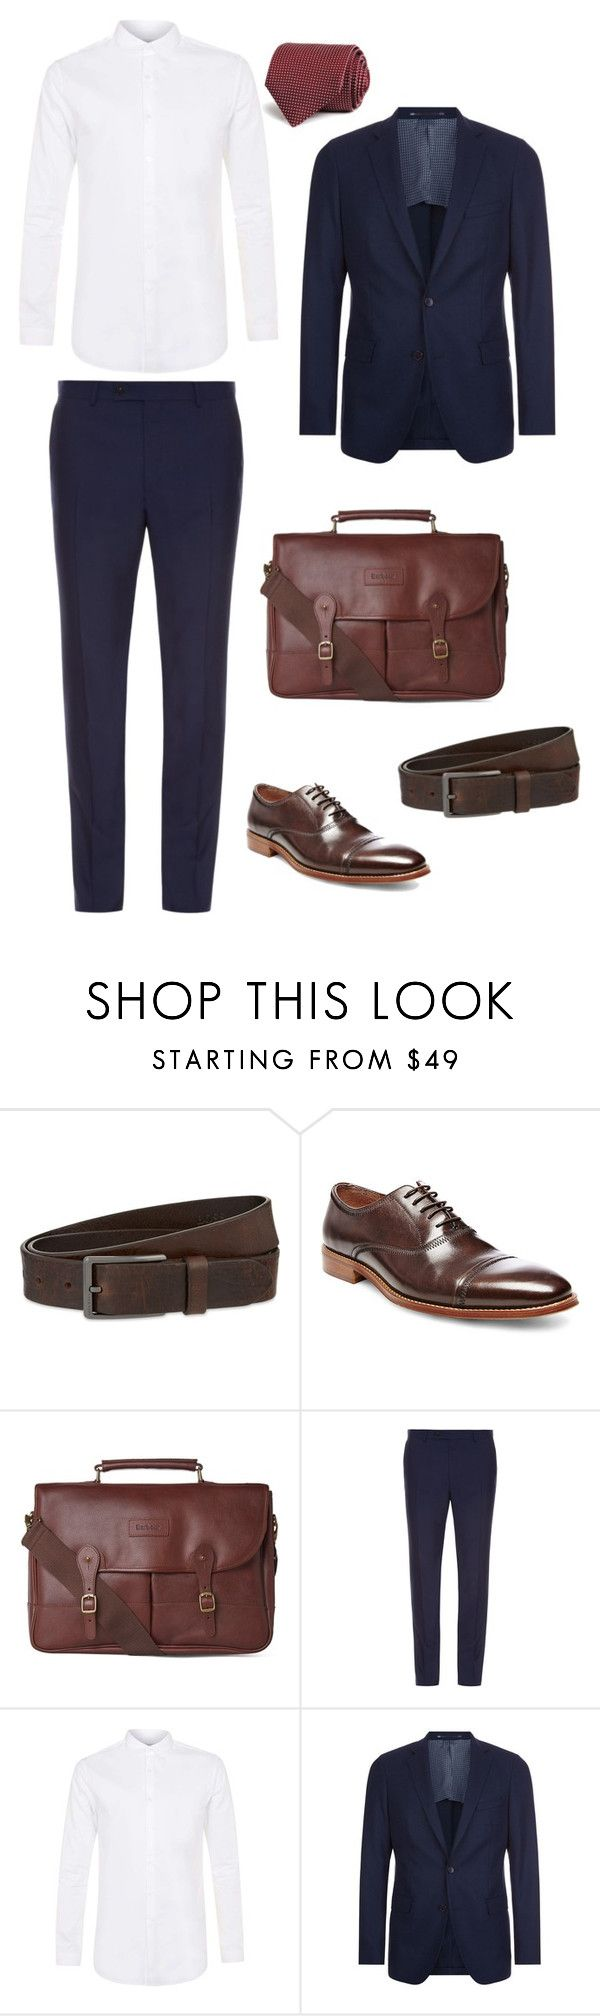 """Look 1 - WILSONS"" by kirravanblanken on Polyvore featuring HUGO, Steve Madden, Barbour, Mathieu Jerome, Topman, BOSS Hugo Boss, Canali, men's fashion and menswear"